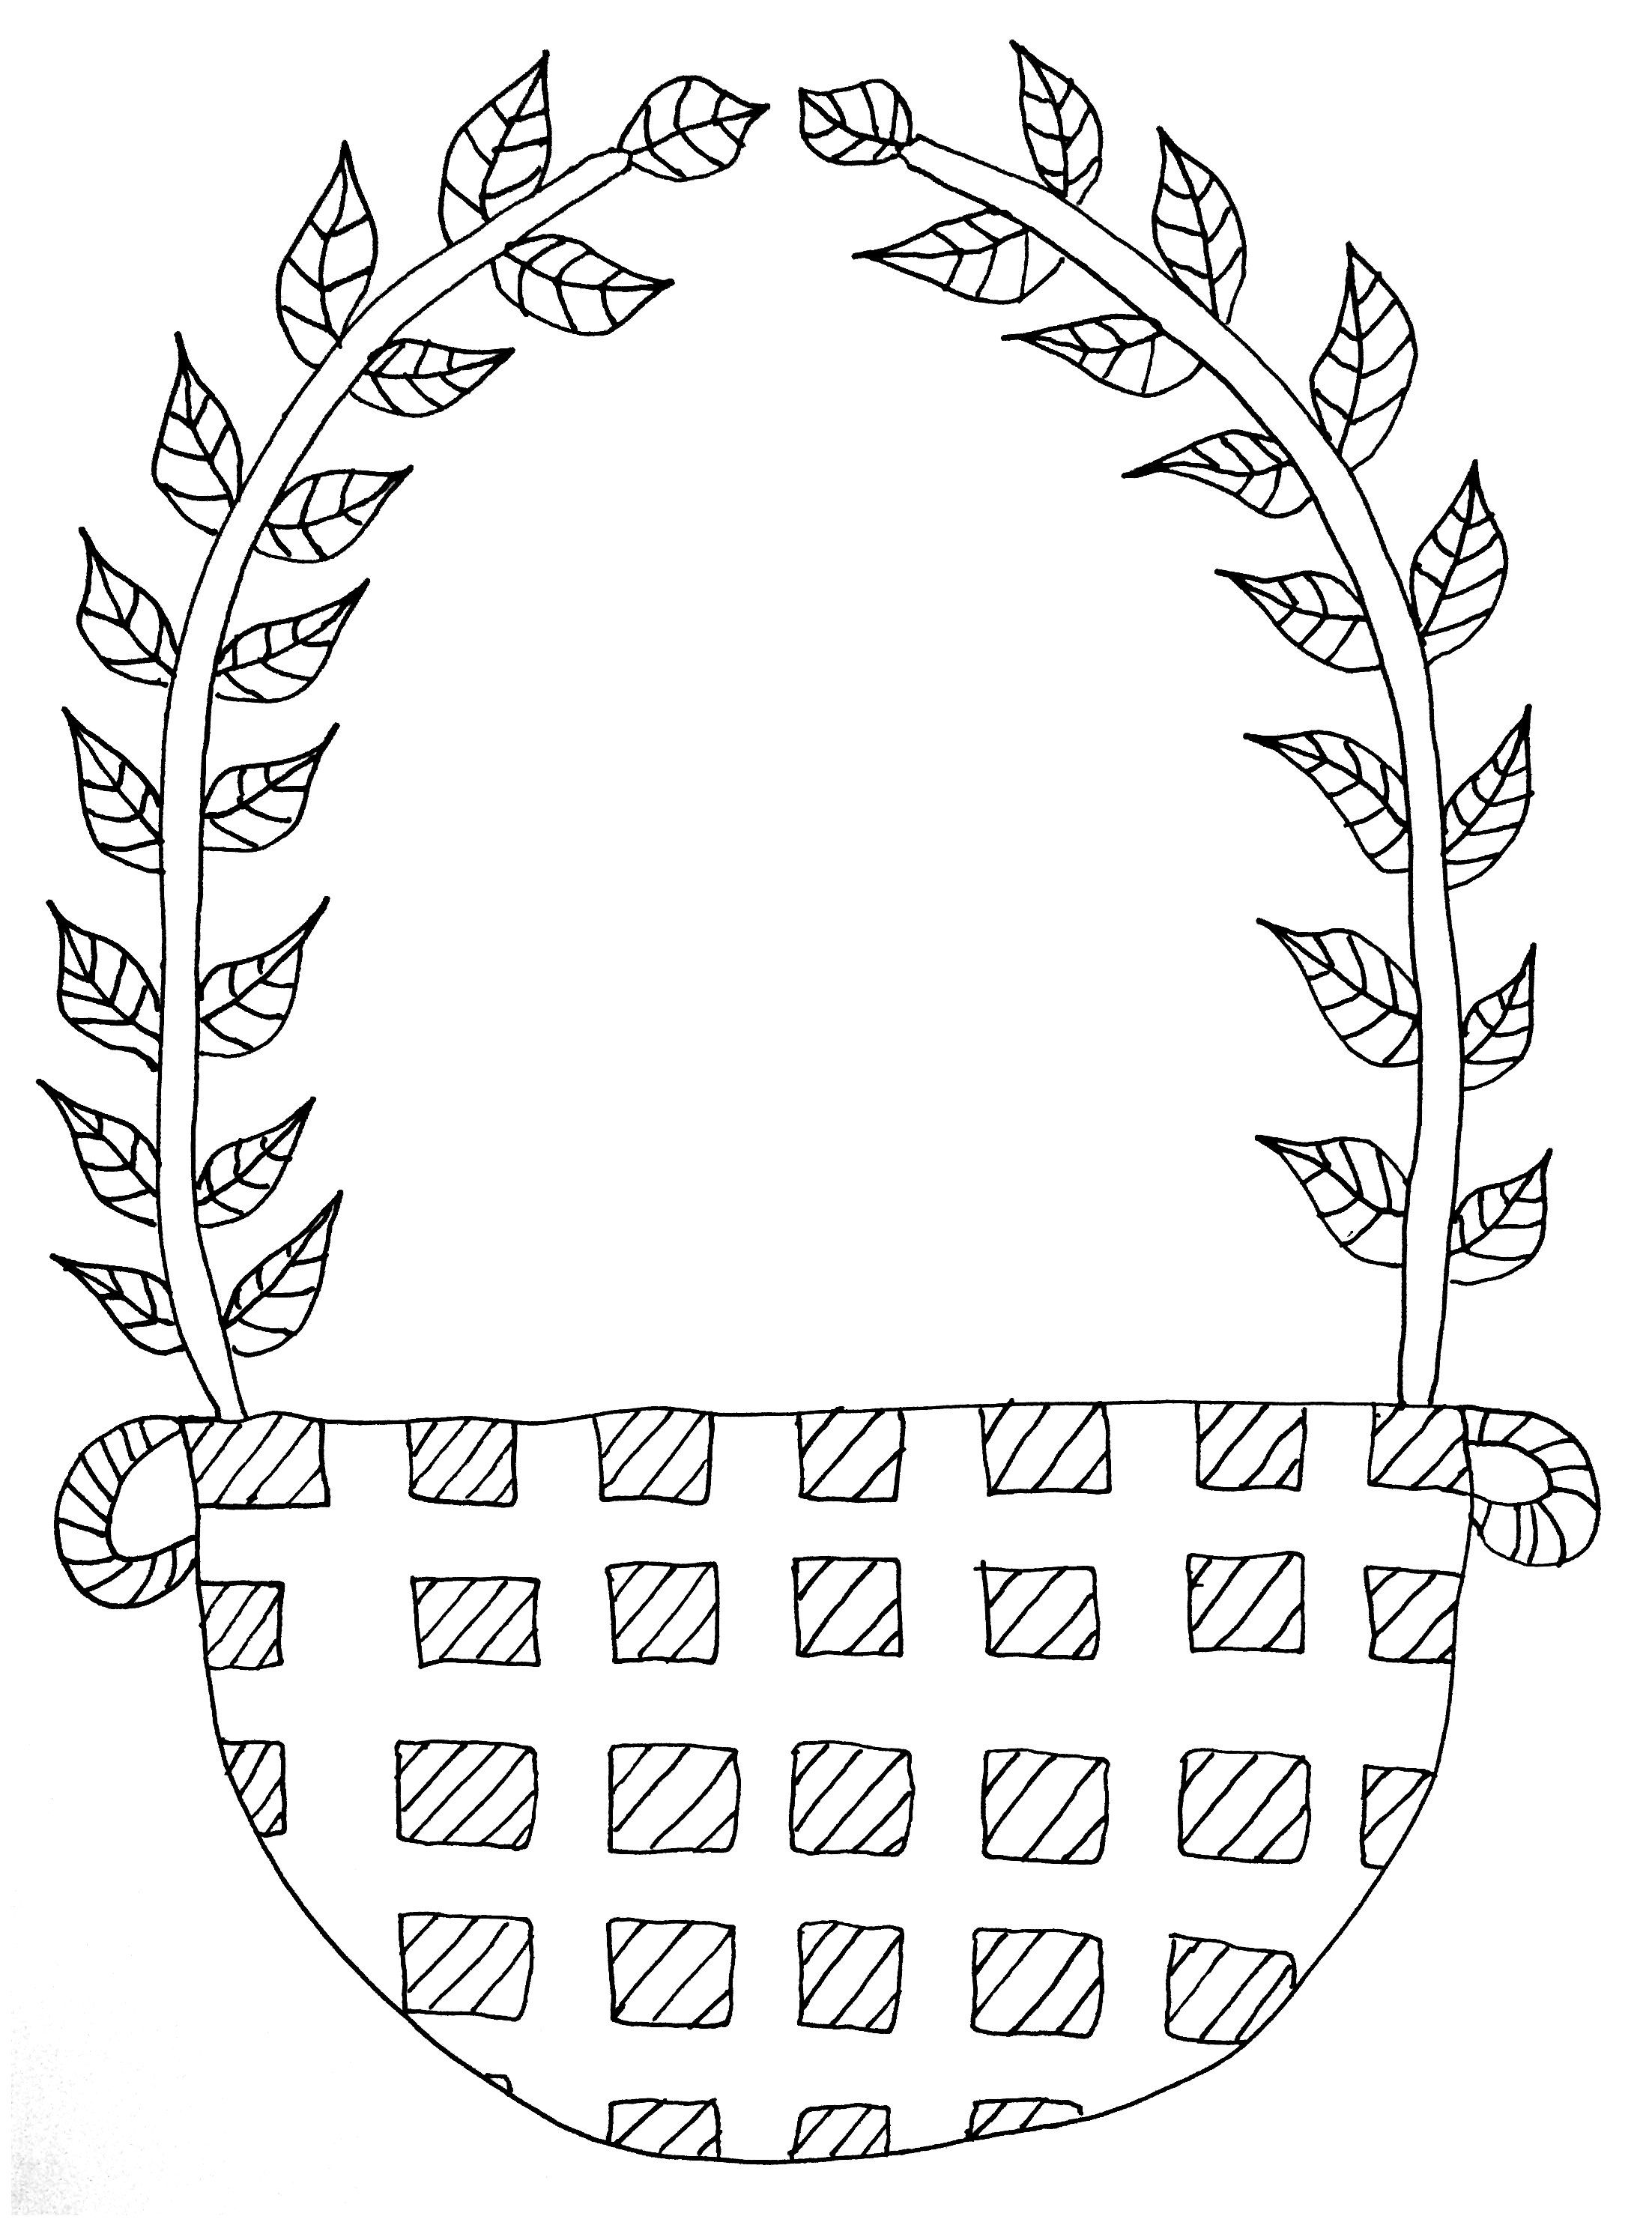 Free coloring page coloring fruit basket to complete fruit basket to complete by olivier